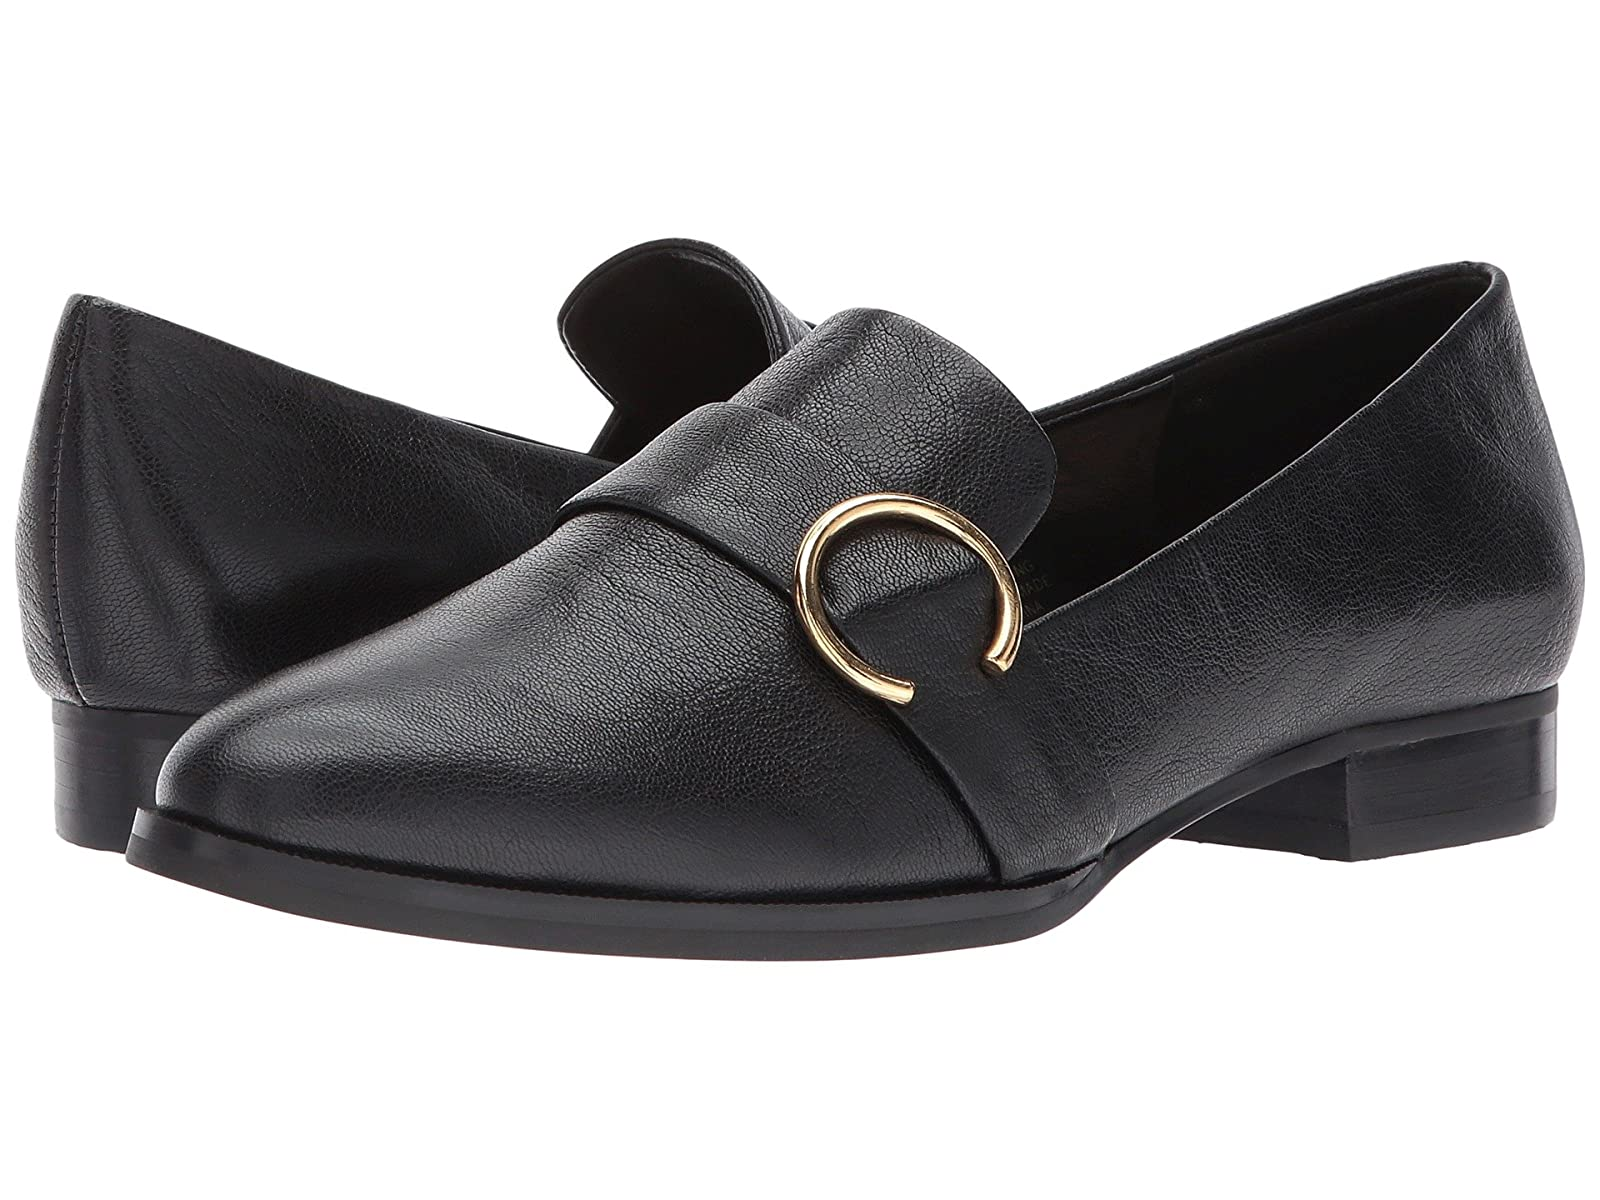 Nine West HuffCheap and distinctive eye-catching shoes